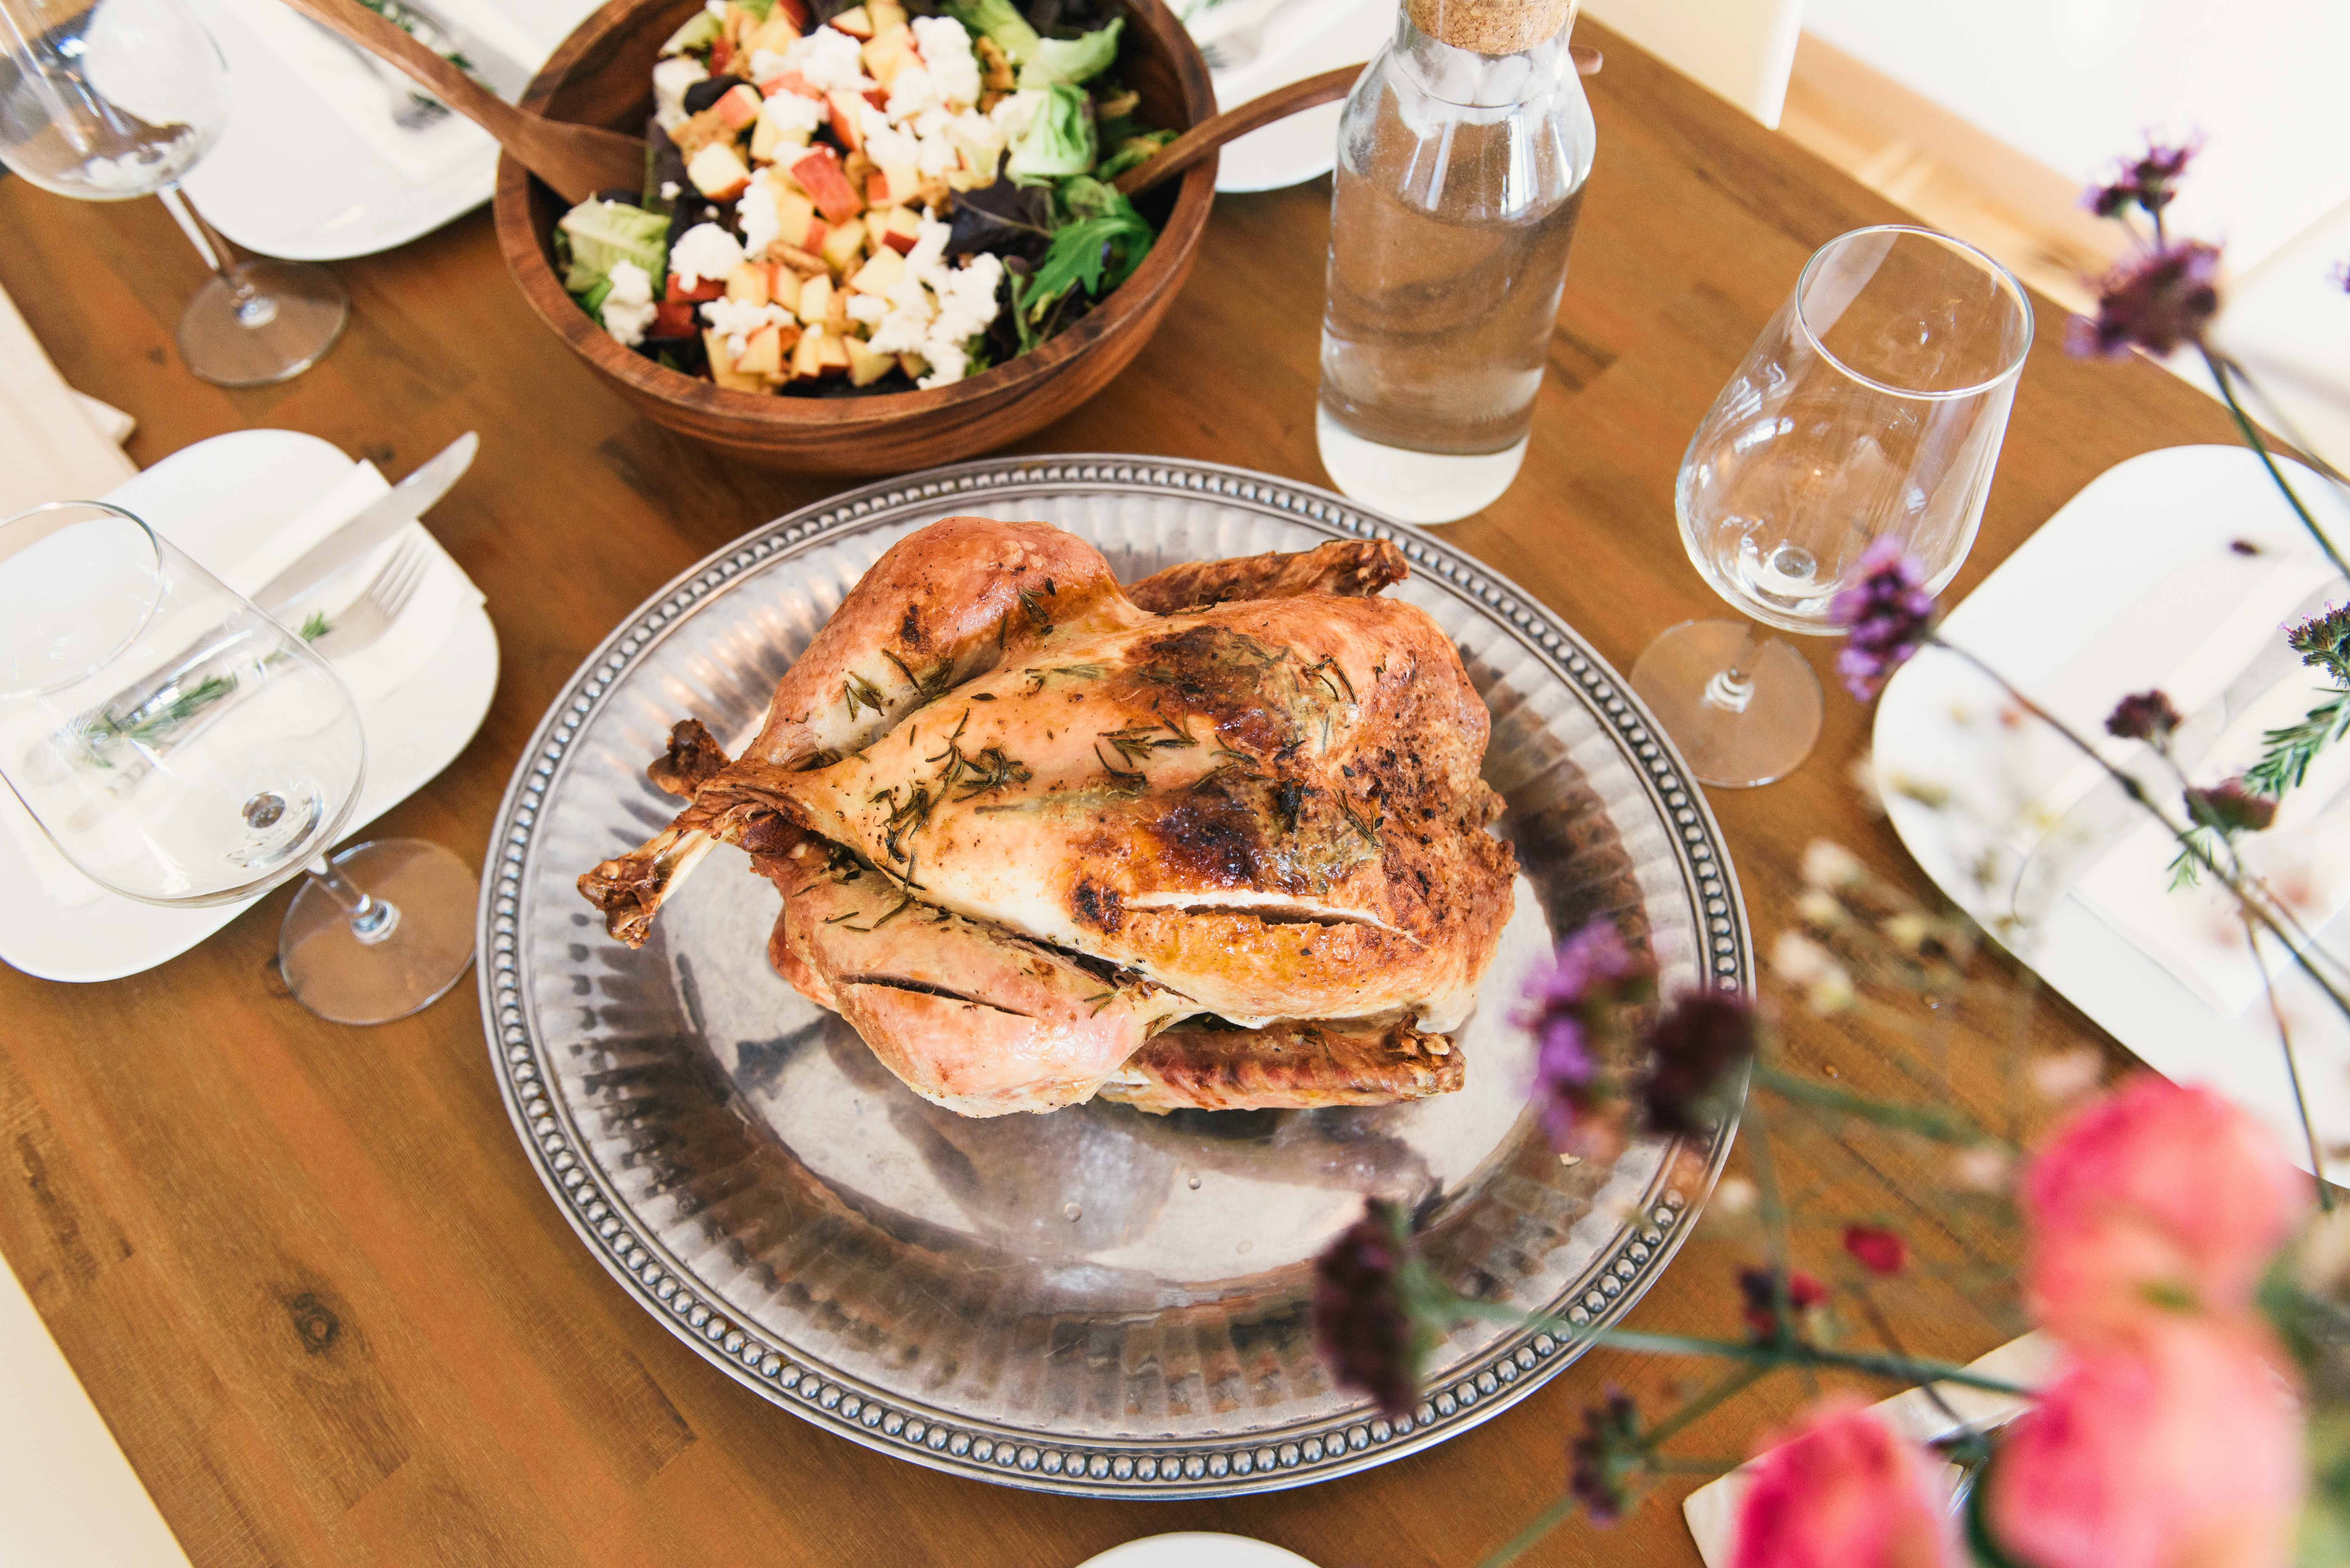 image of a holiday table with a roasted chicken and salad